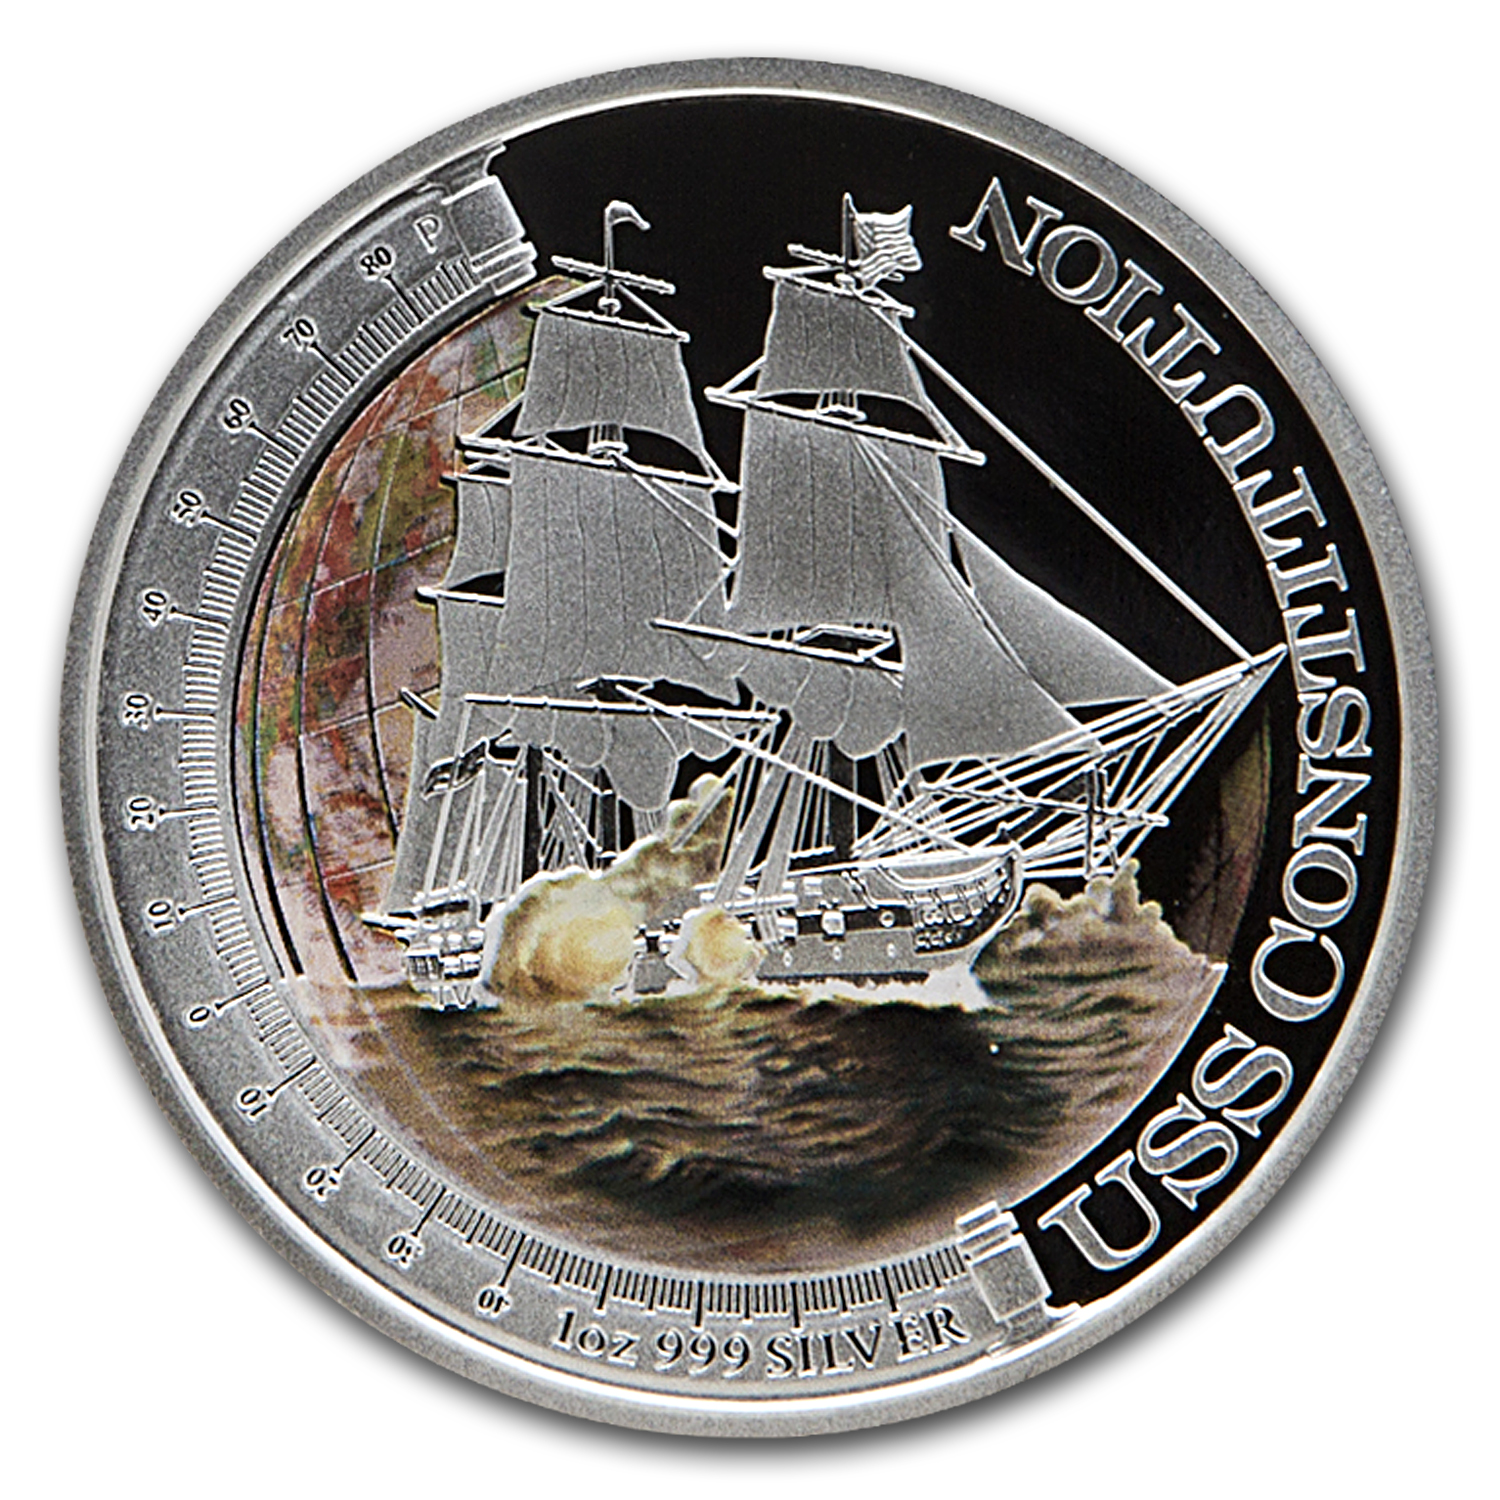 2012 1oz Prf Silver USS Constitution Ships that Changed the World